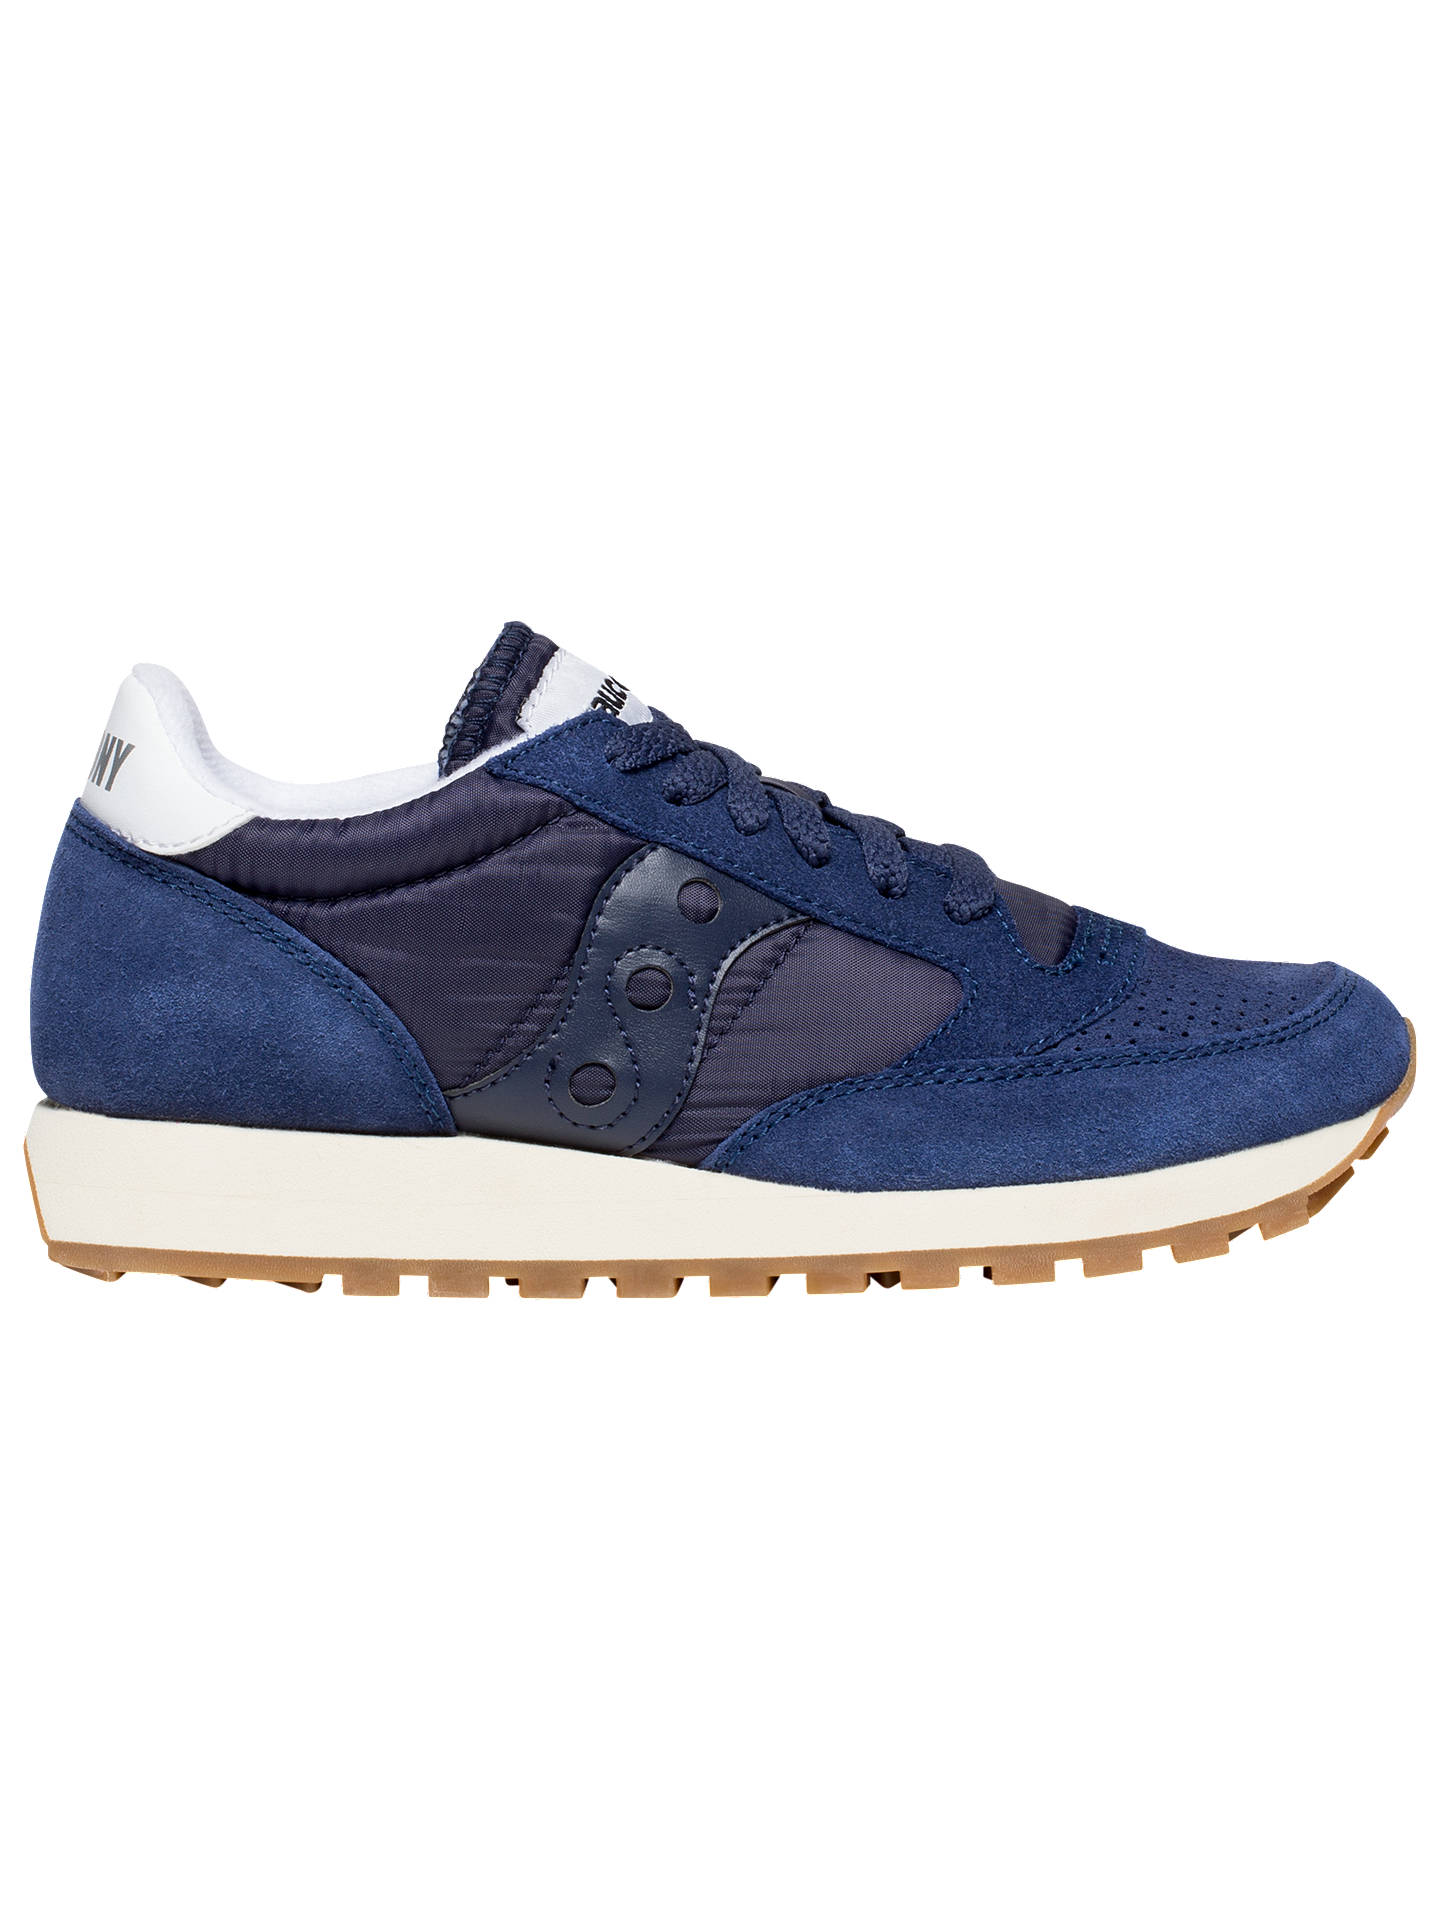 check out 8e965 a4eda Saucony Jazz Original Vintage Women's Trainers, Navy Blue